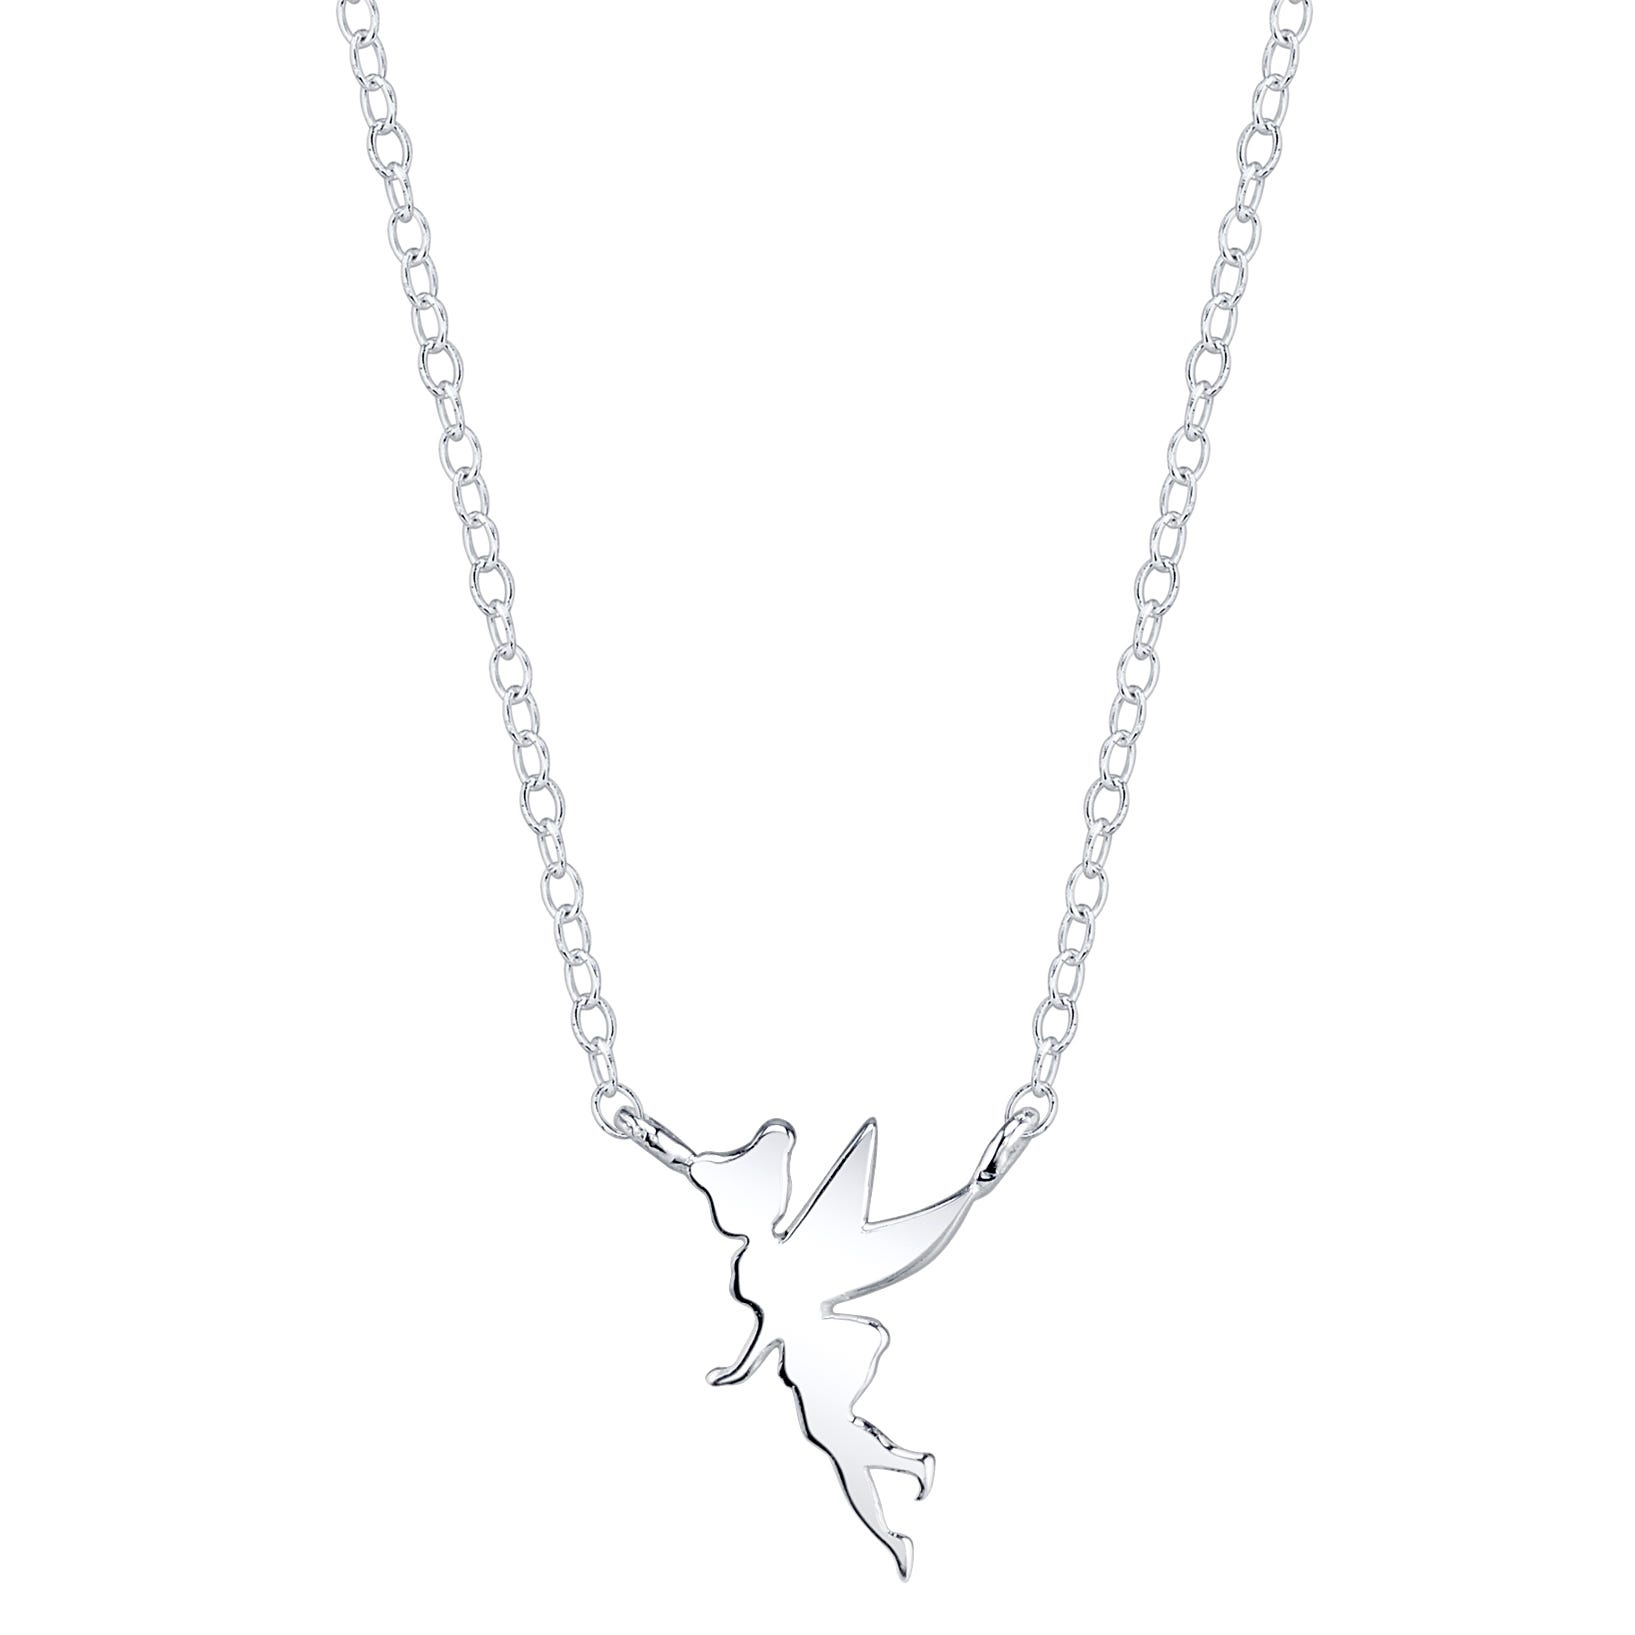 DISNEY© Tinkerbell Silhouette Necklace in Sterling Silver